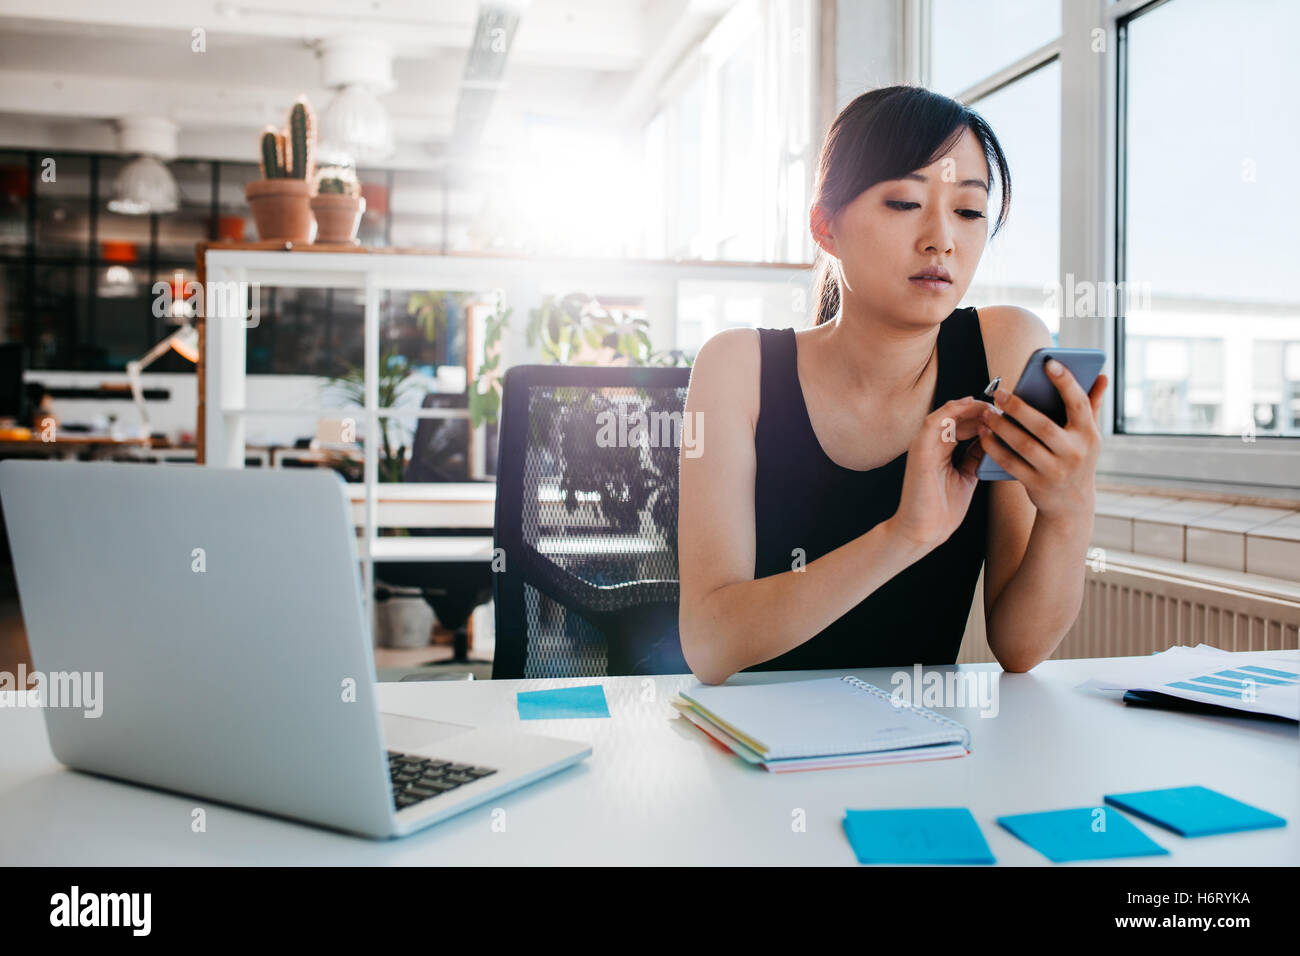 Portrait of young asian woman sitting at her desk with laptop and adhesive notes using mobile phone. Asian businesswoman - Stock Image